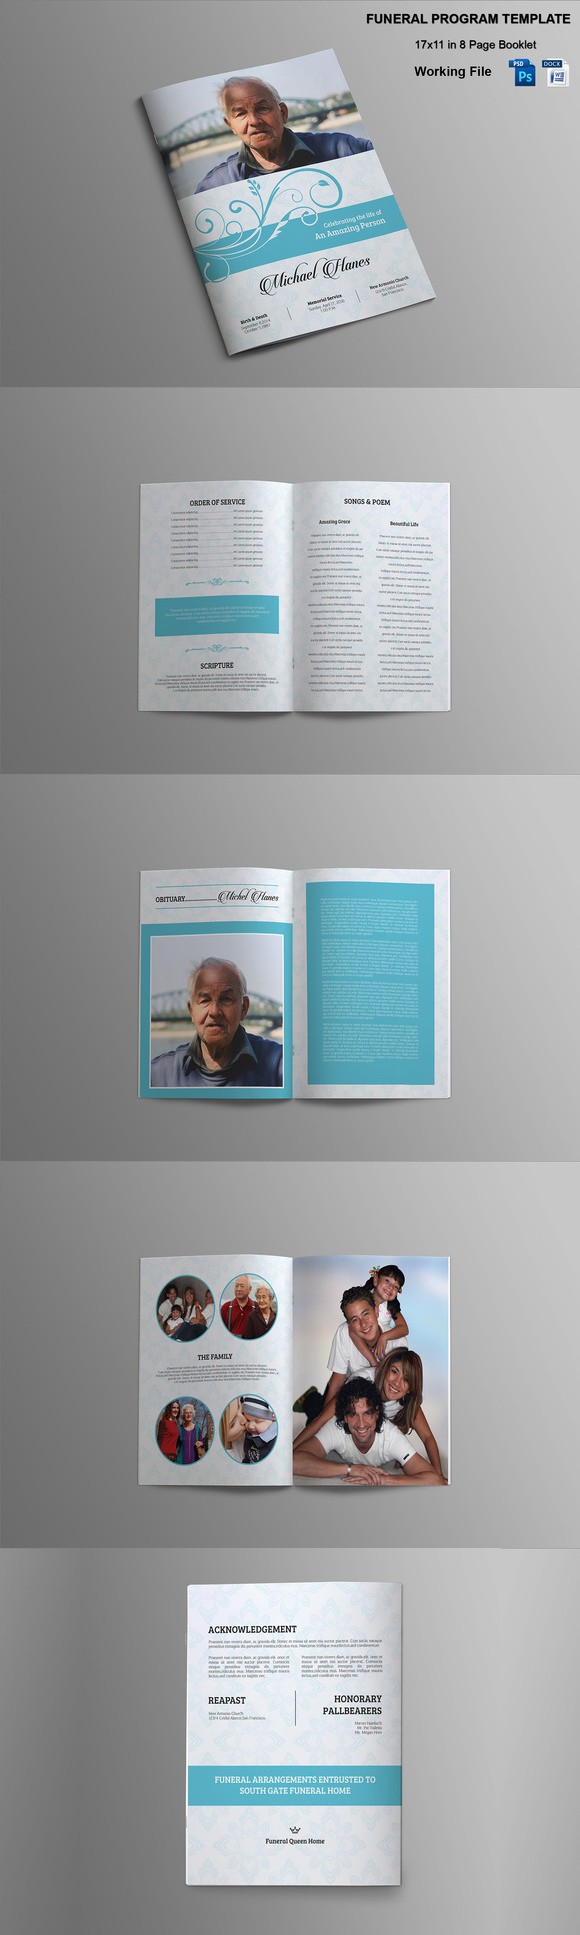 Page Funeral Booklet TemplateV  Brochure Templates